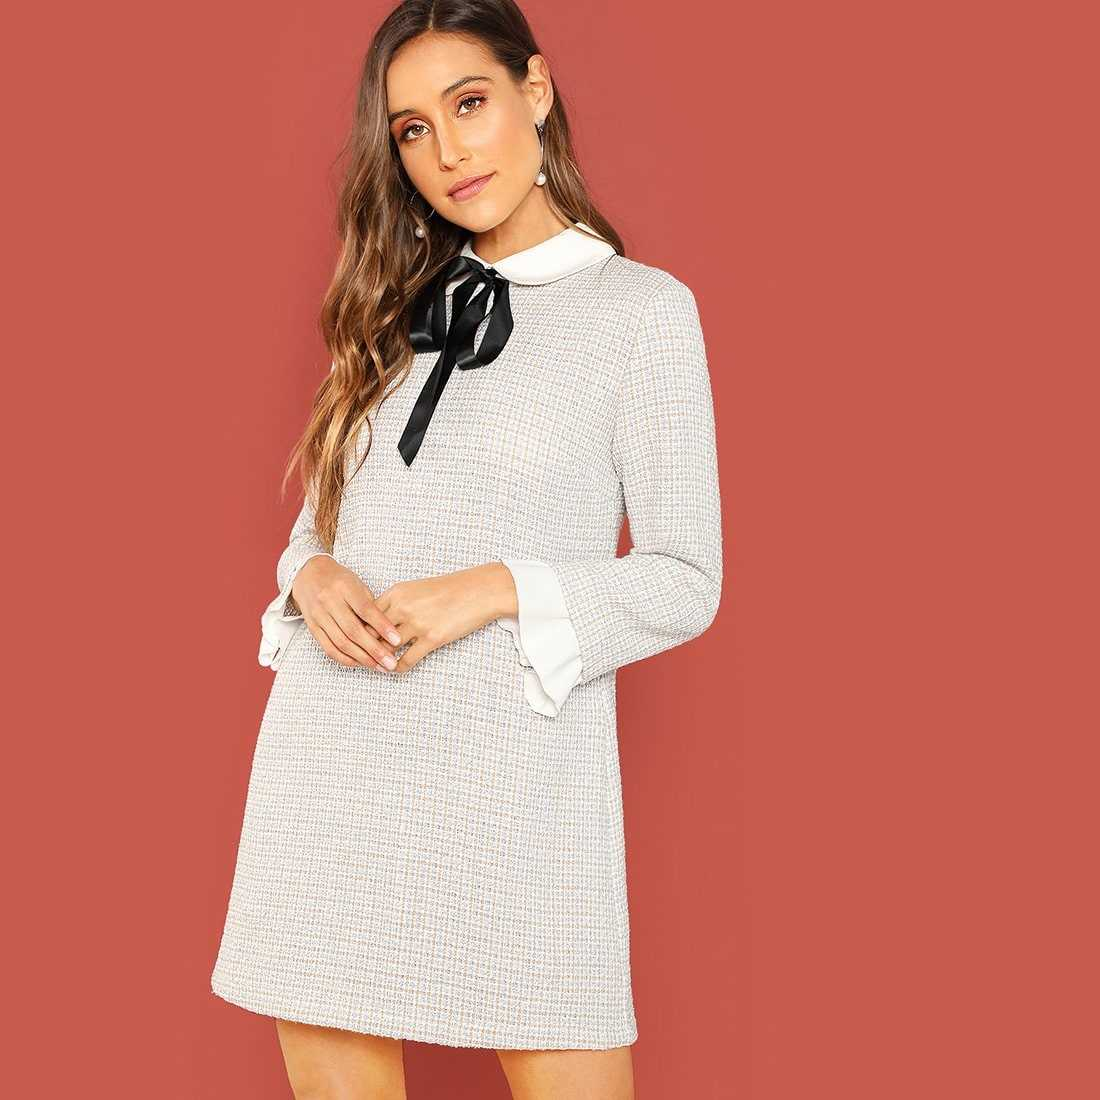 Tie Neck Contrast Trim Tweed Dress in White by ROMWE on GOOFASH